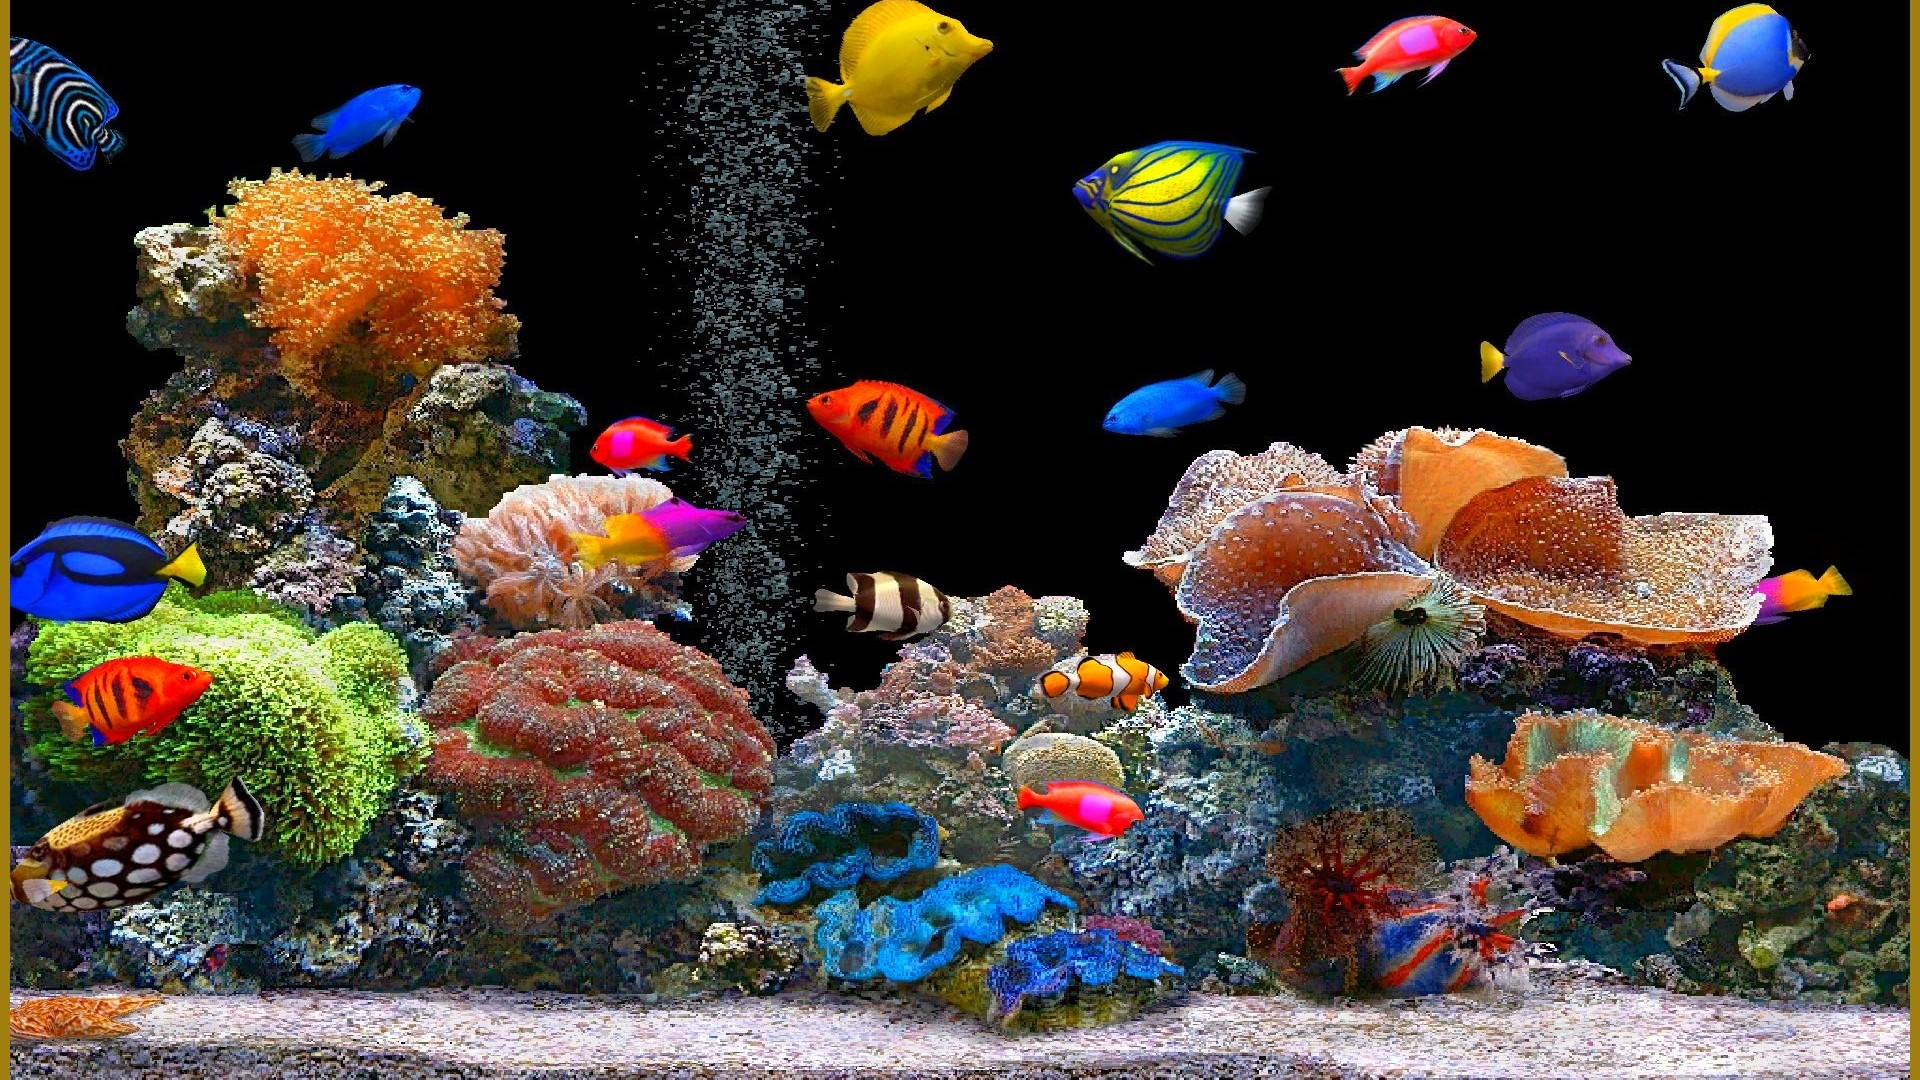 Animated Desktop Wallpaper Fish for Windows 81 1920x1080